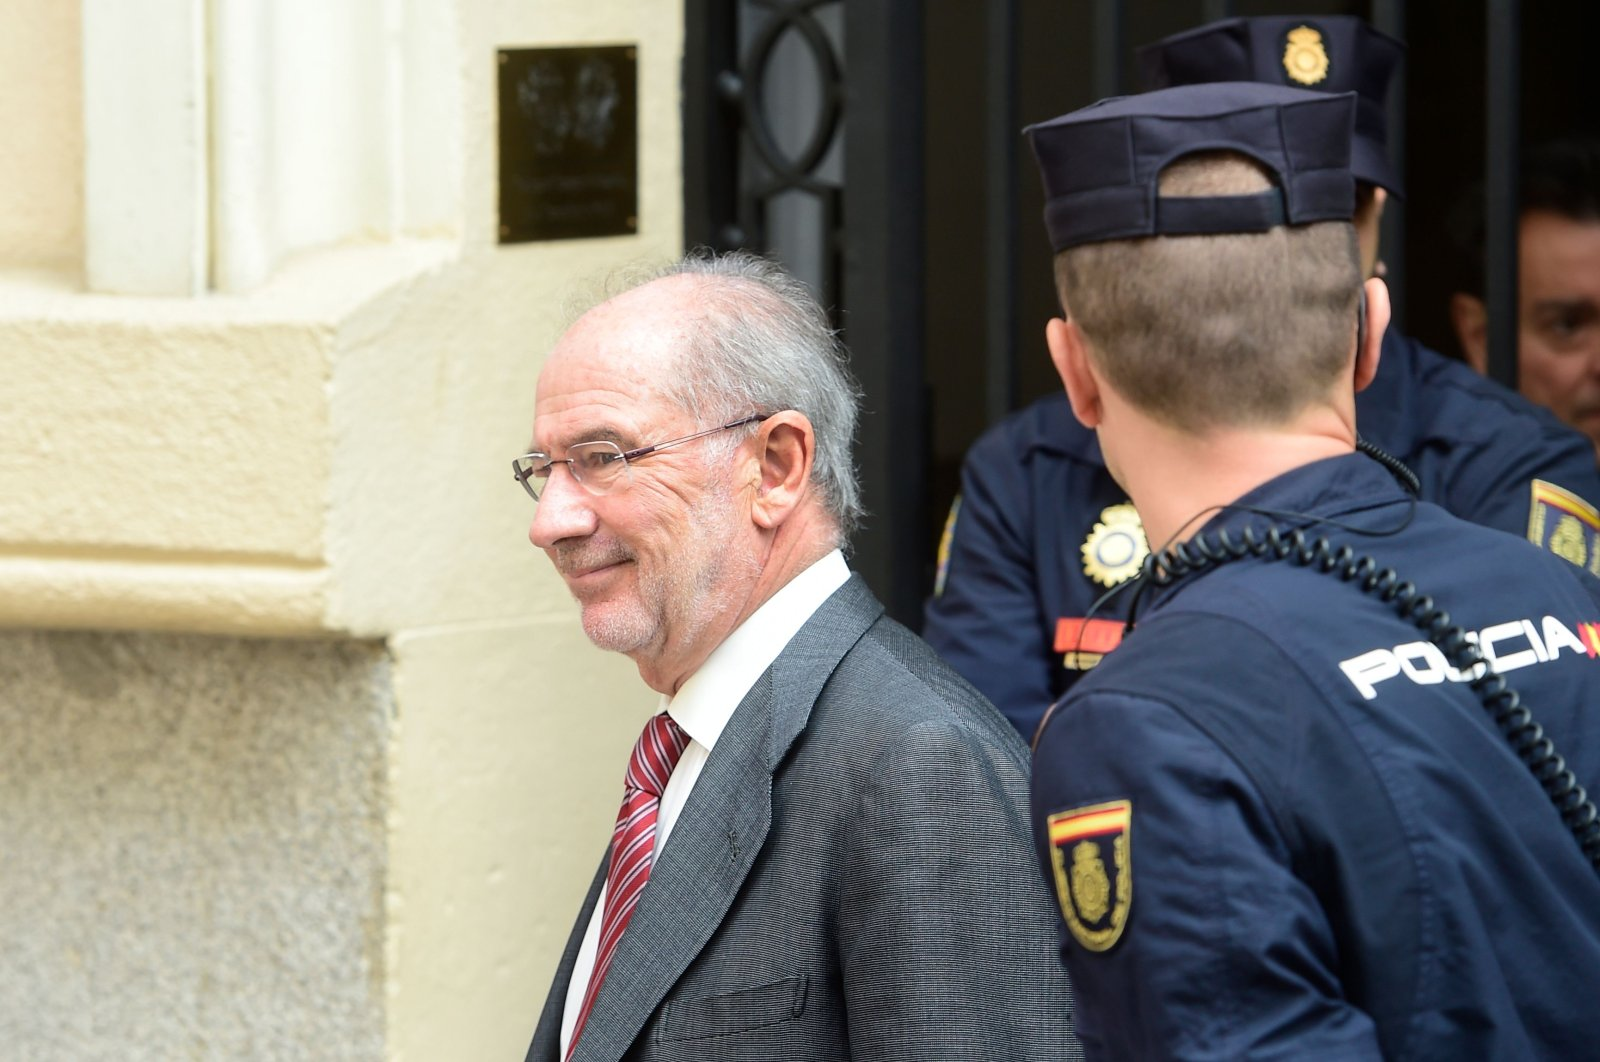 Former IMF head and former Spanish Economy minister Rodrigo Rato (L) smiles as he leaves his office, April 17, 2015. (AFP Photo)